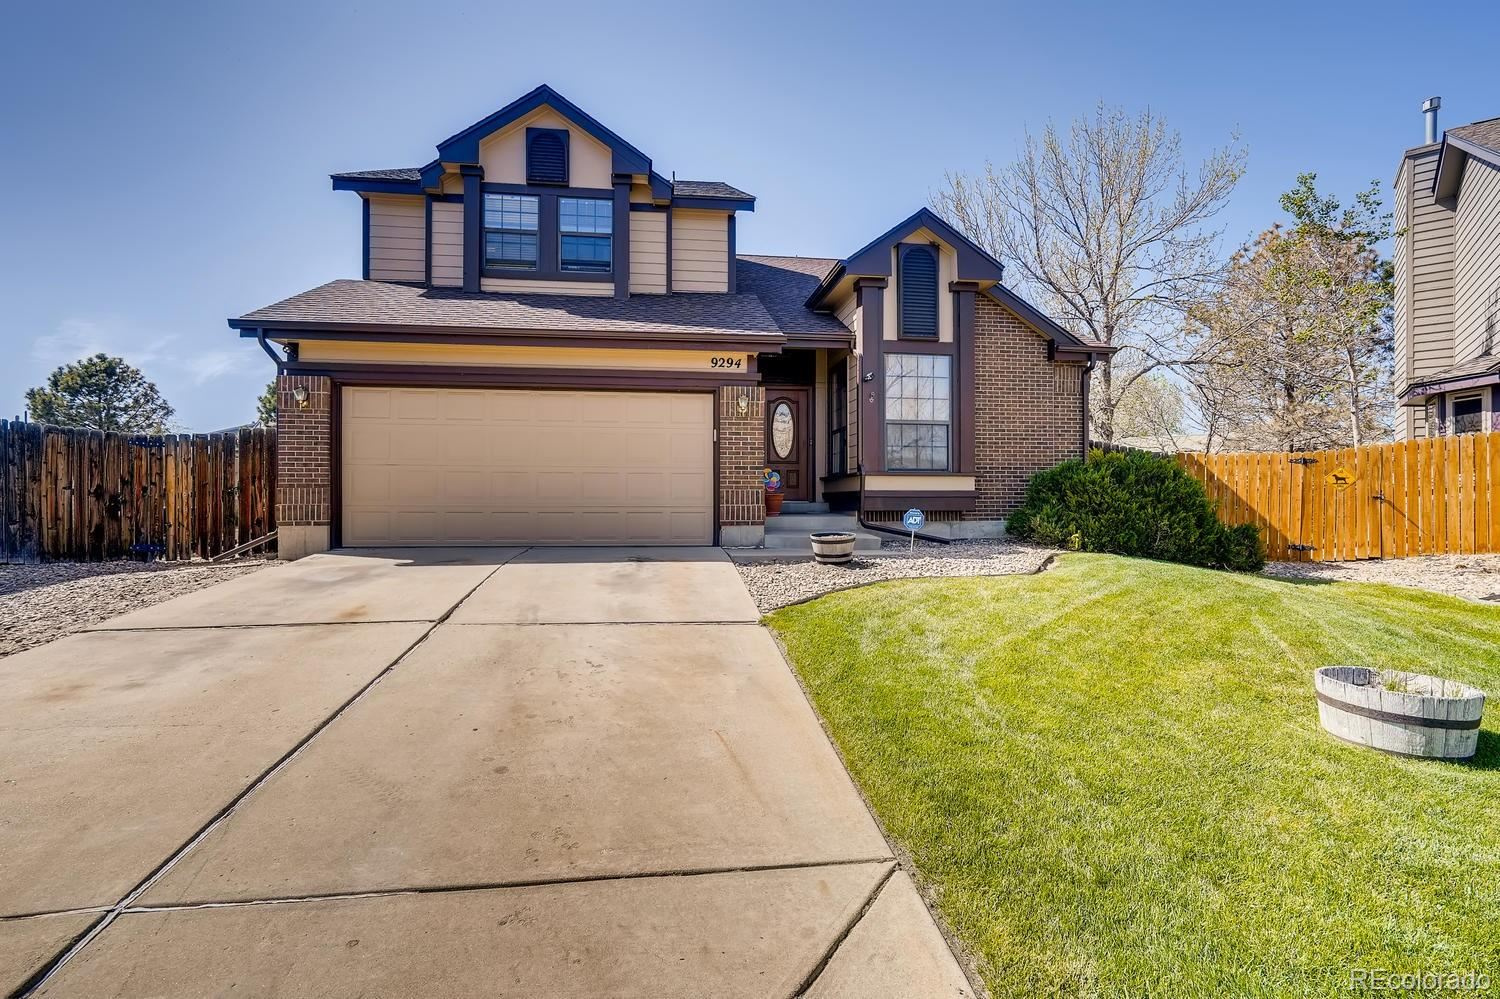 9294 W 100th Place, Westminster, CO 80021 - #: 6336481